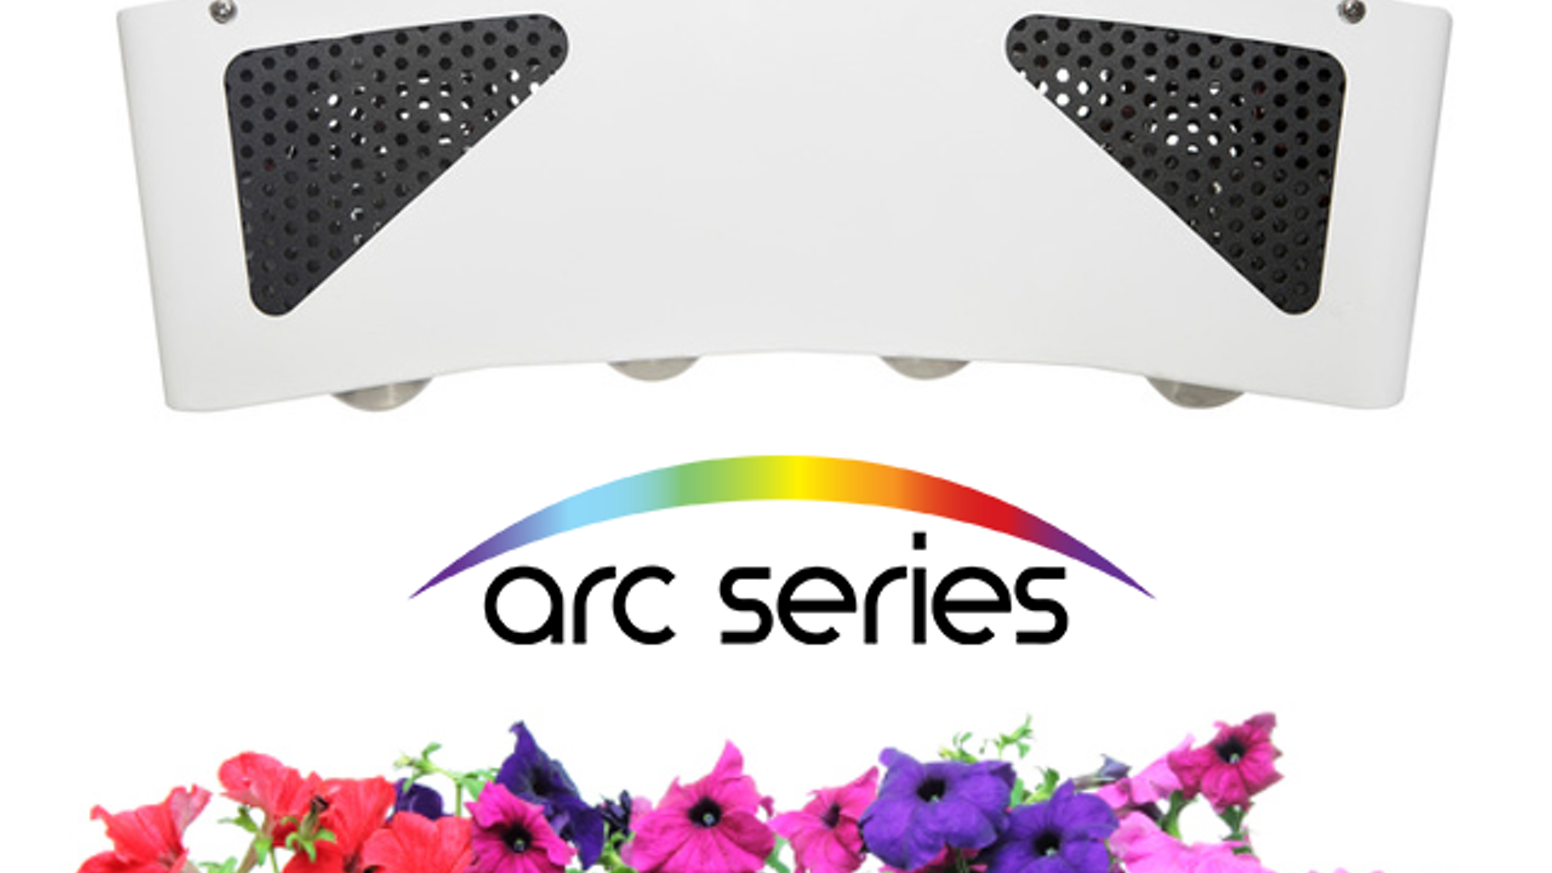 Arc Series The Grow Light Reinvented By The Market Smart